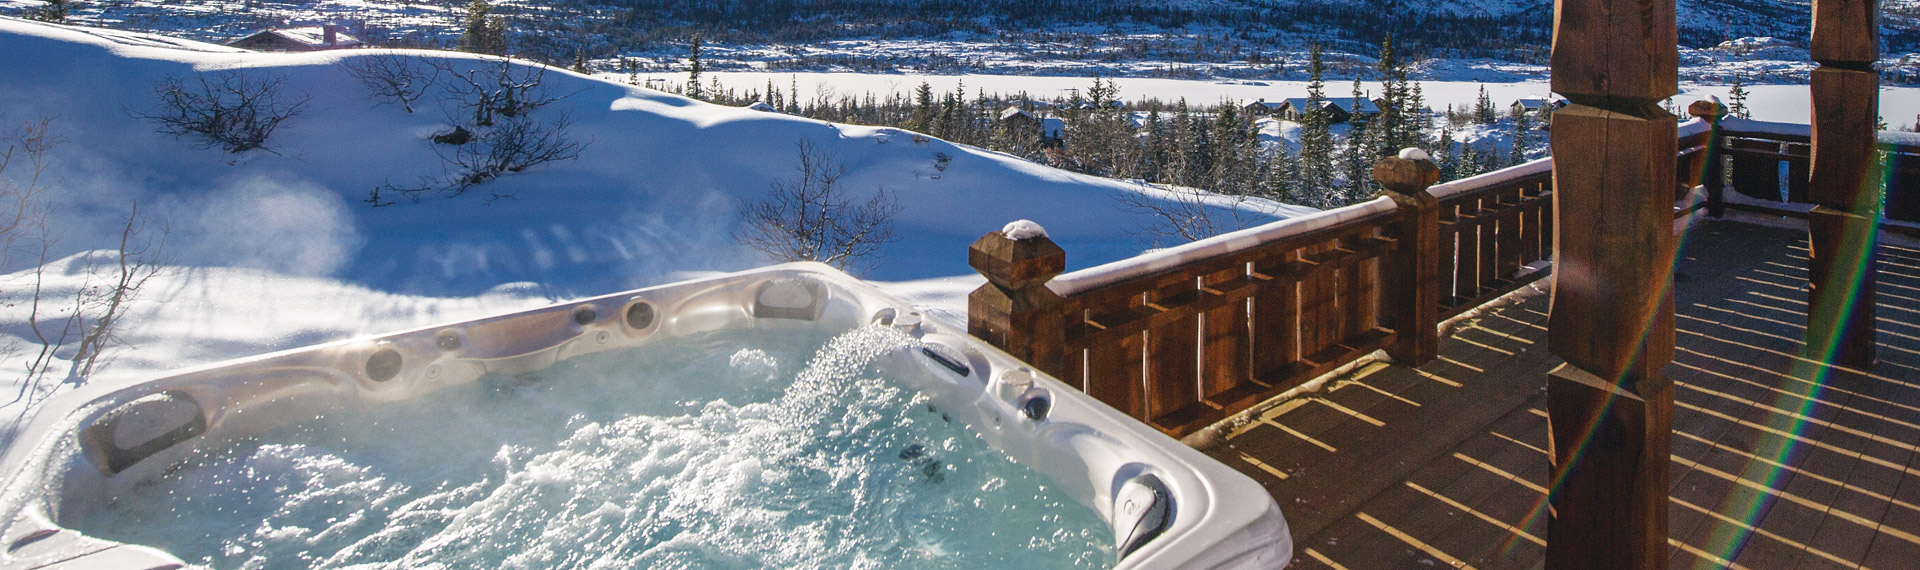 winter spa